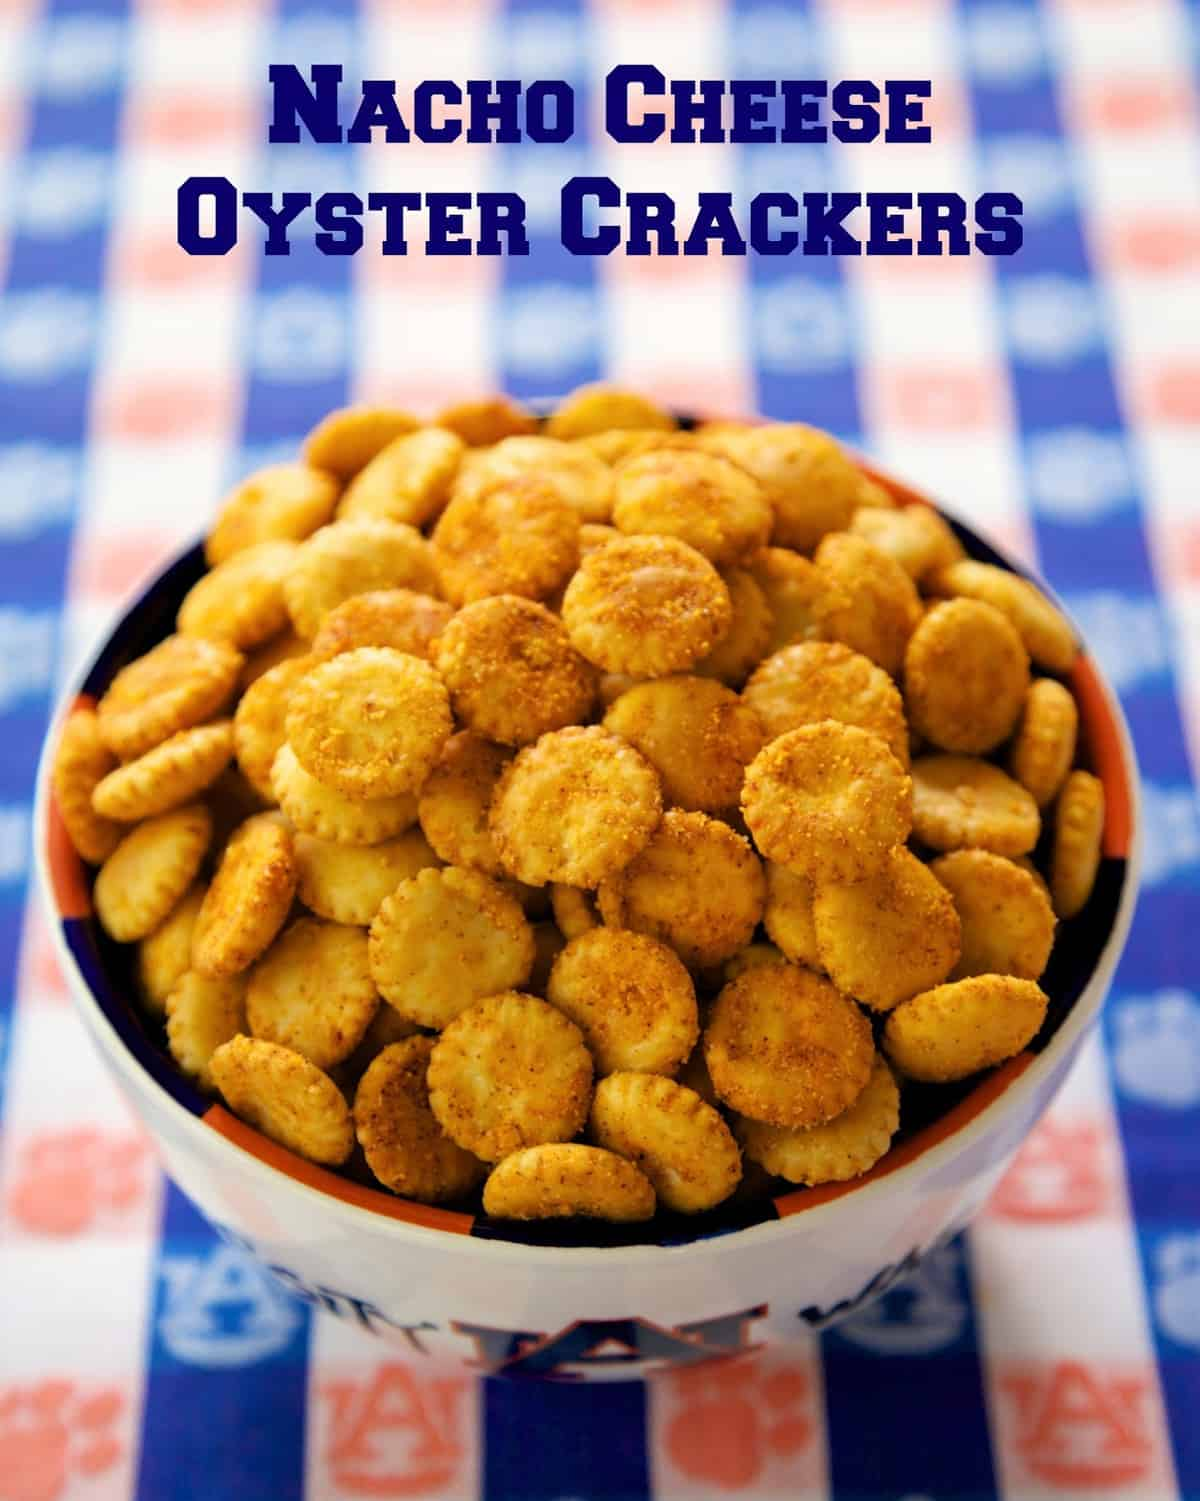 Nacho Cheese Oyster Crackers - Doritos Cracker Bites - great for snacking or in soups and chili! Oyster crackers coated in taco seasoning and cheese. Seriously addictive! Ready to eat in 15 minutes! Everyone loves this easy snack recipe!